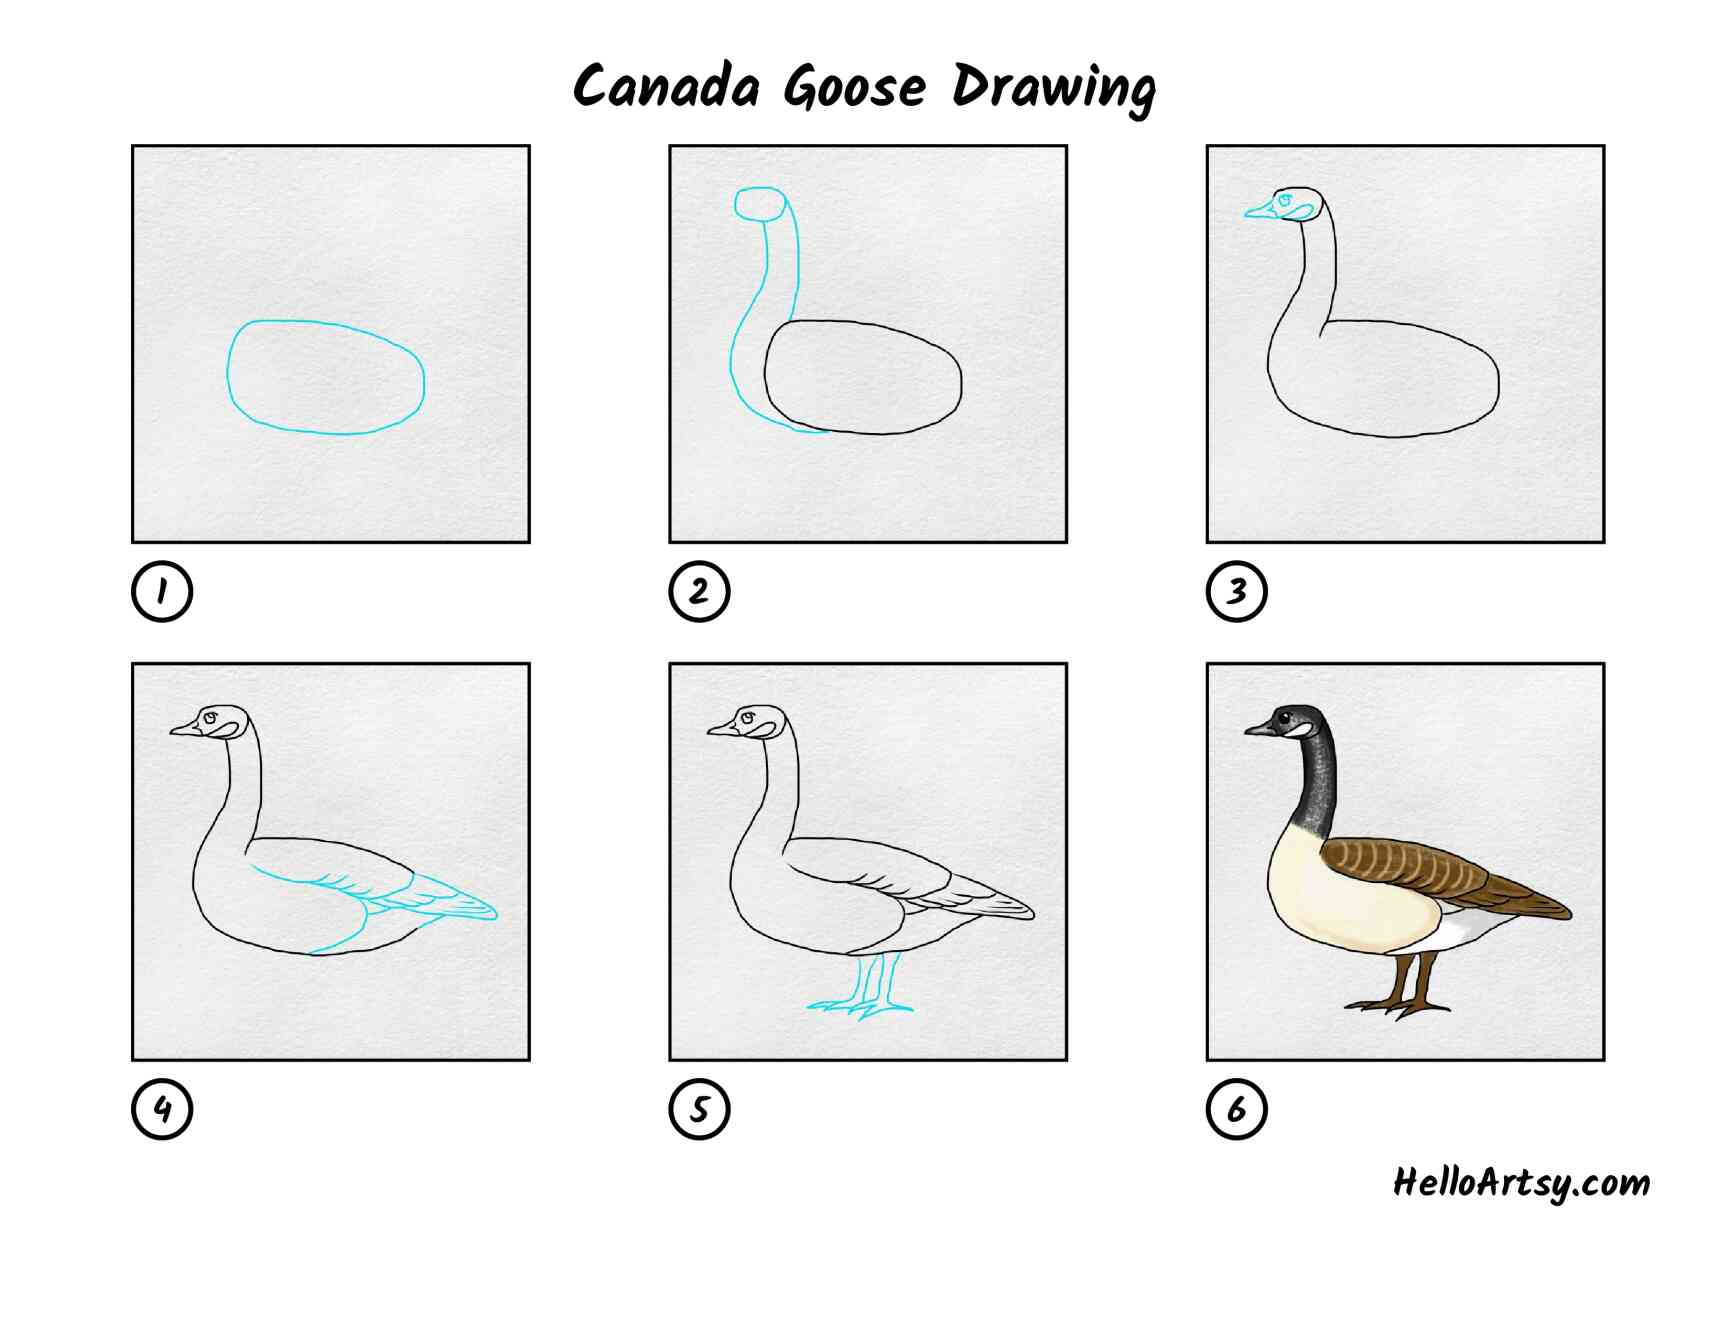 Canada Goose Drawing: All Steps